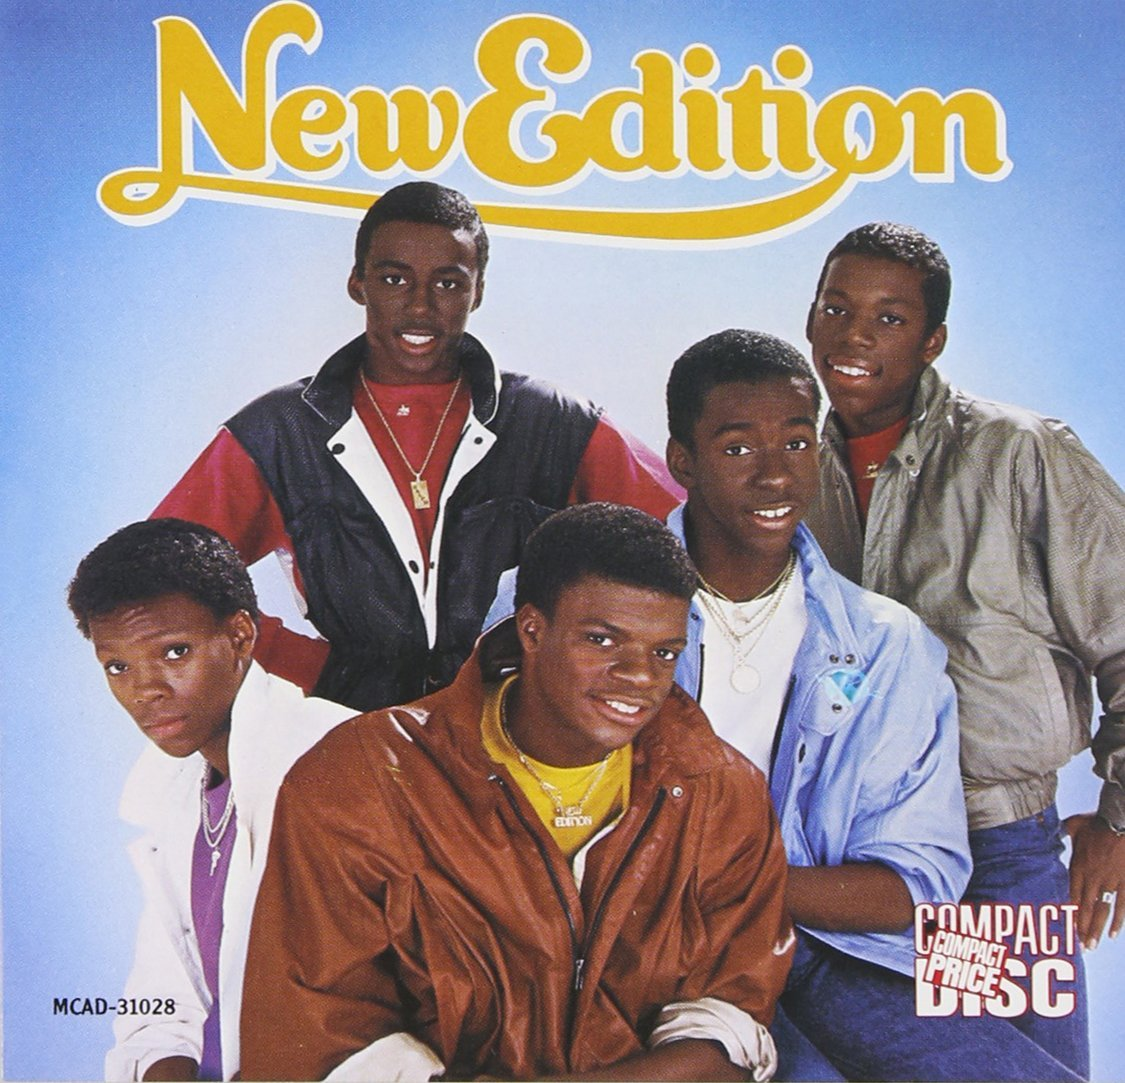 Bet to air miniseries about '80s r&b group new edition.